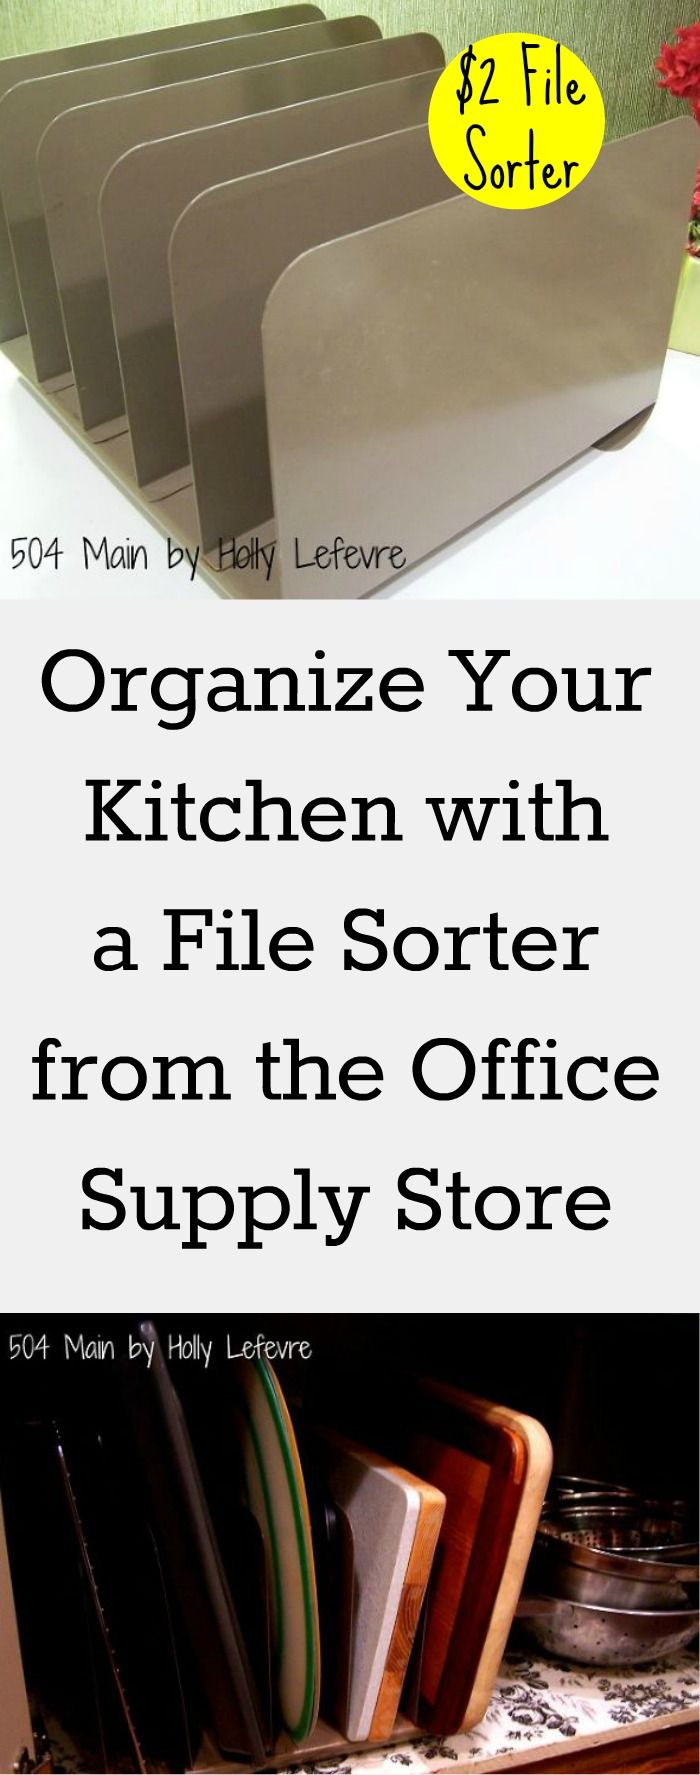 This is such a smart idea for organizing without spending a lot of money! This would be even better spray painted.